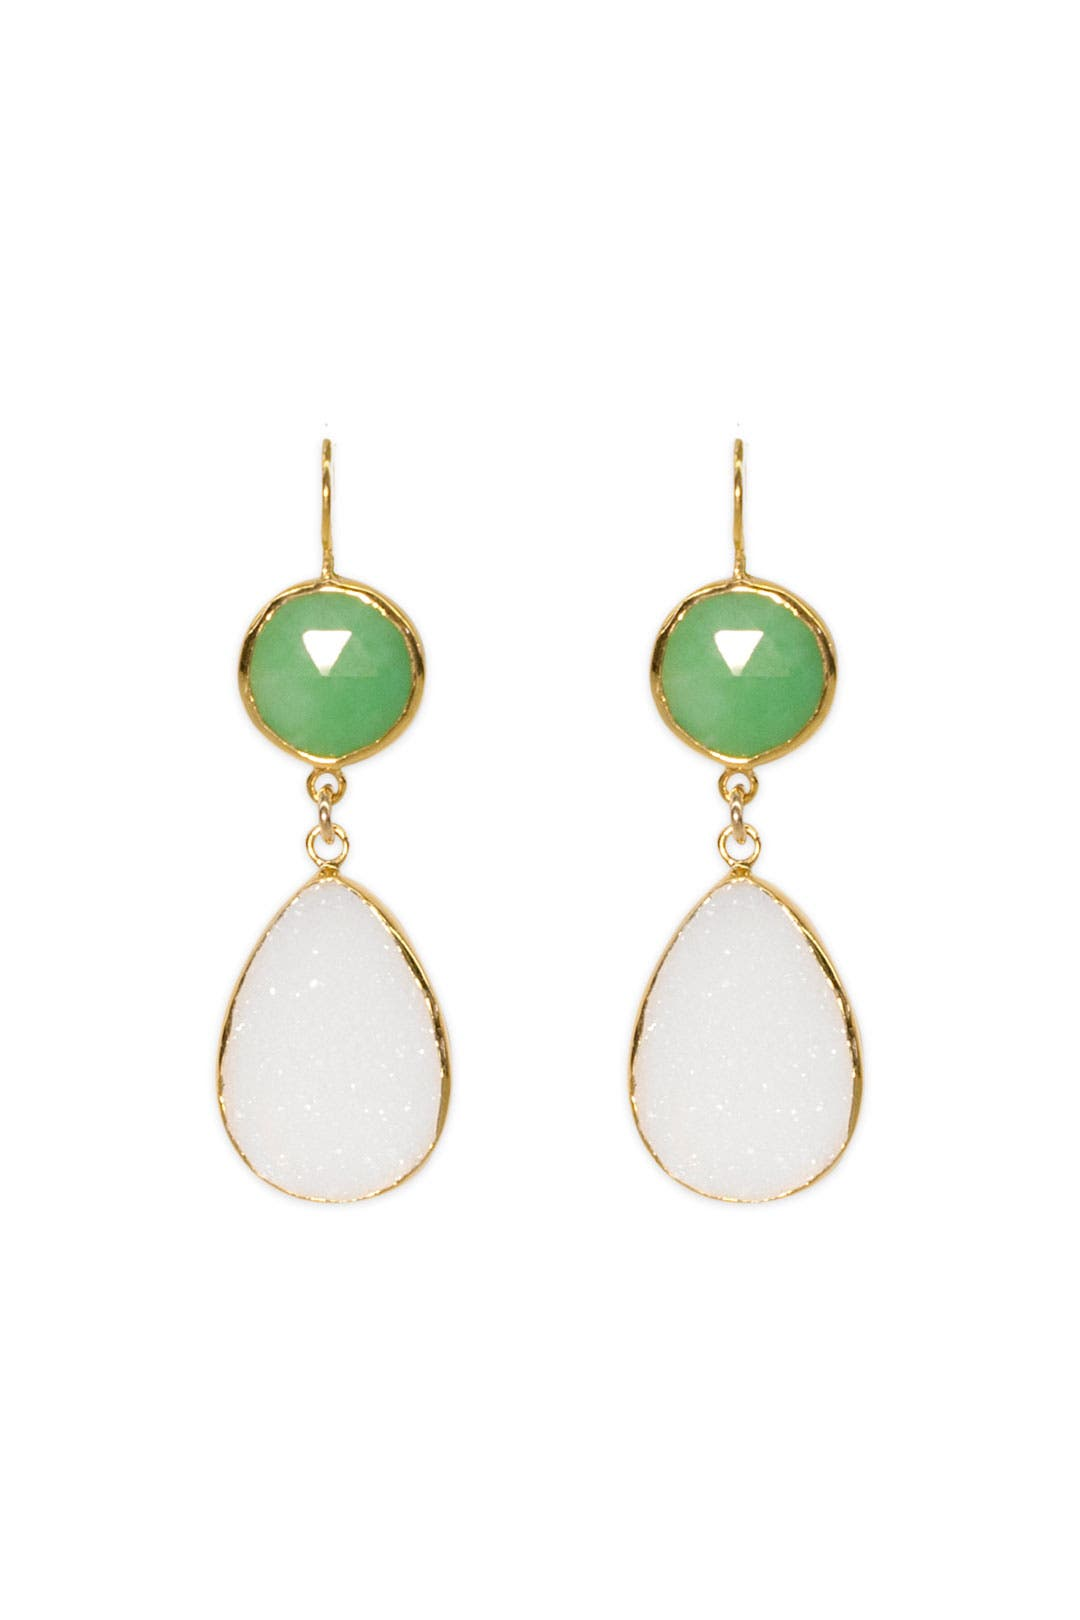 Green Druzy Dream Earrings by Margaret Elizabeth